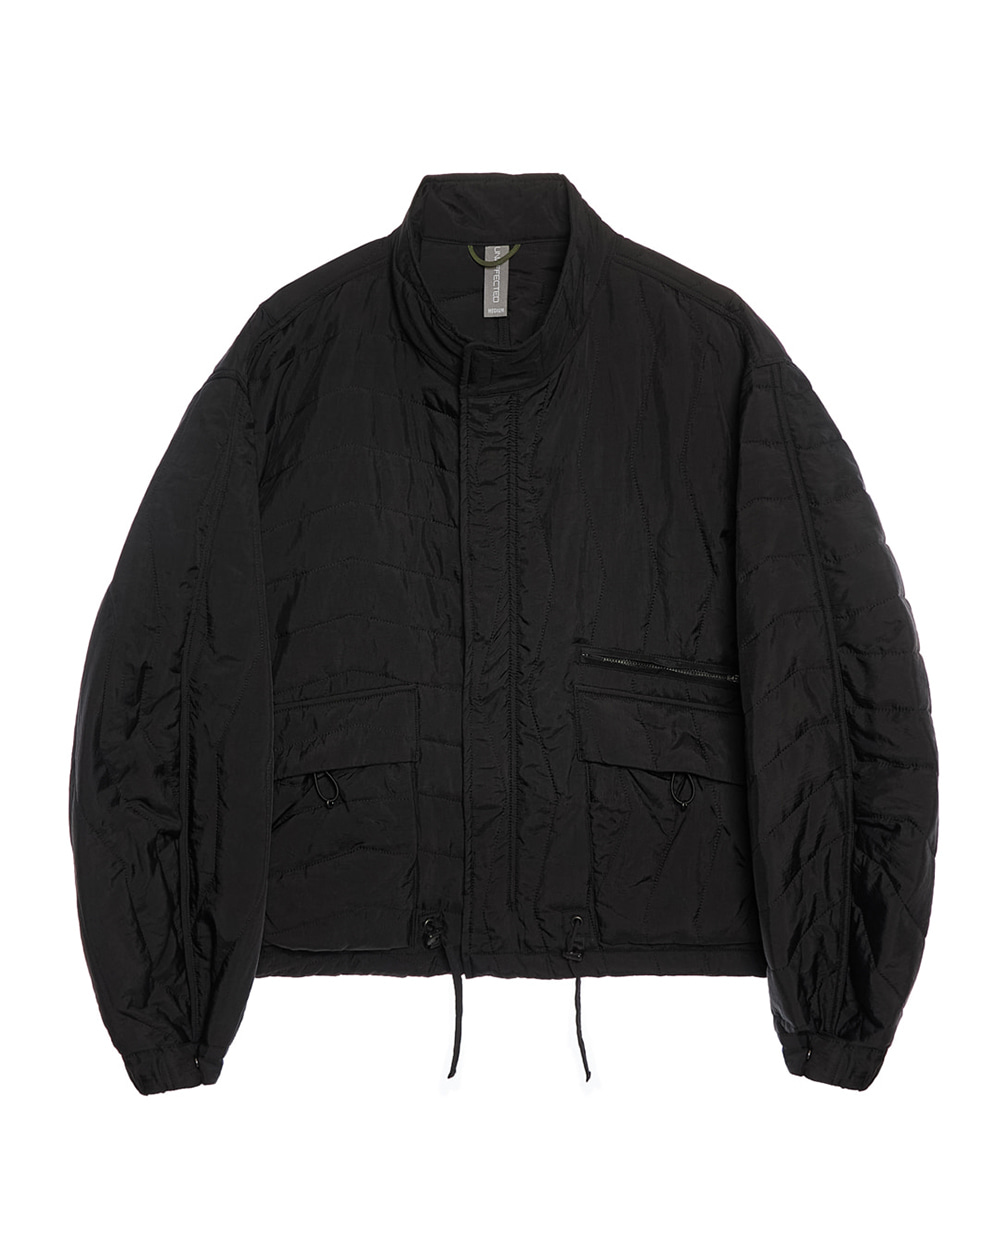 언어펙티드 MULTI QUILTED BLOUSON (Black)_RESTOCK